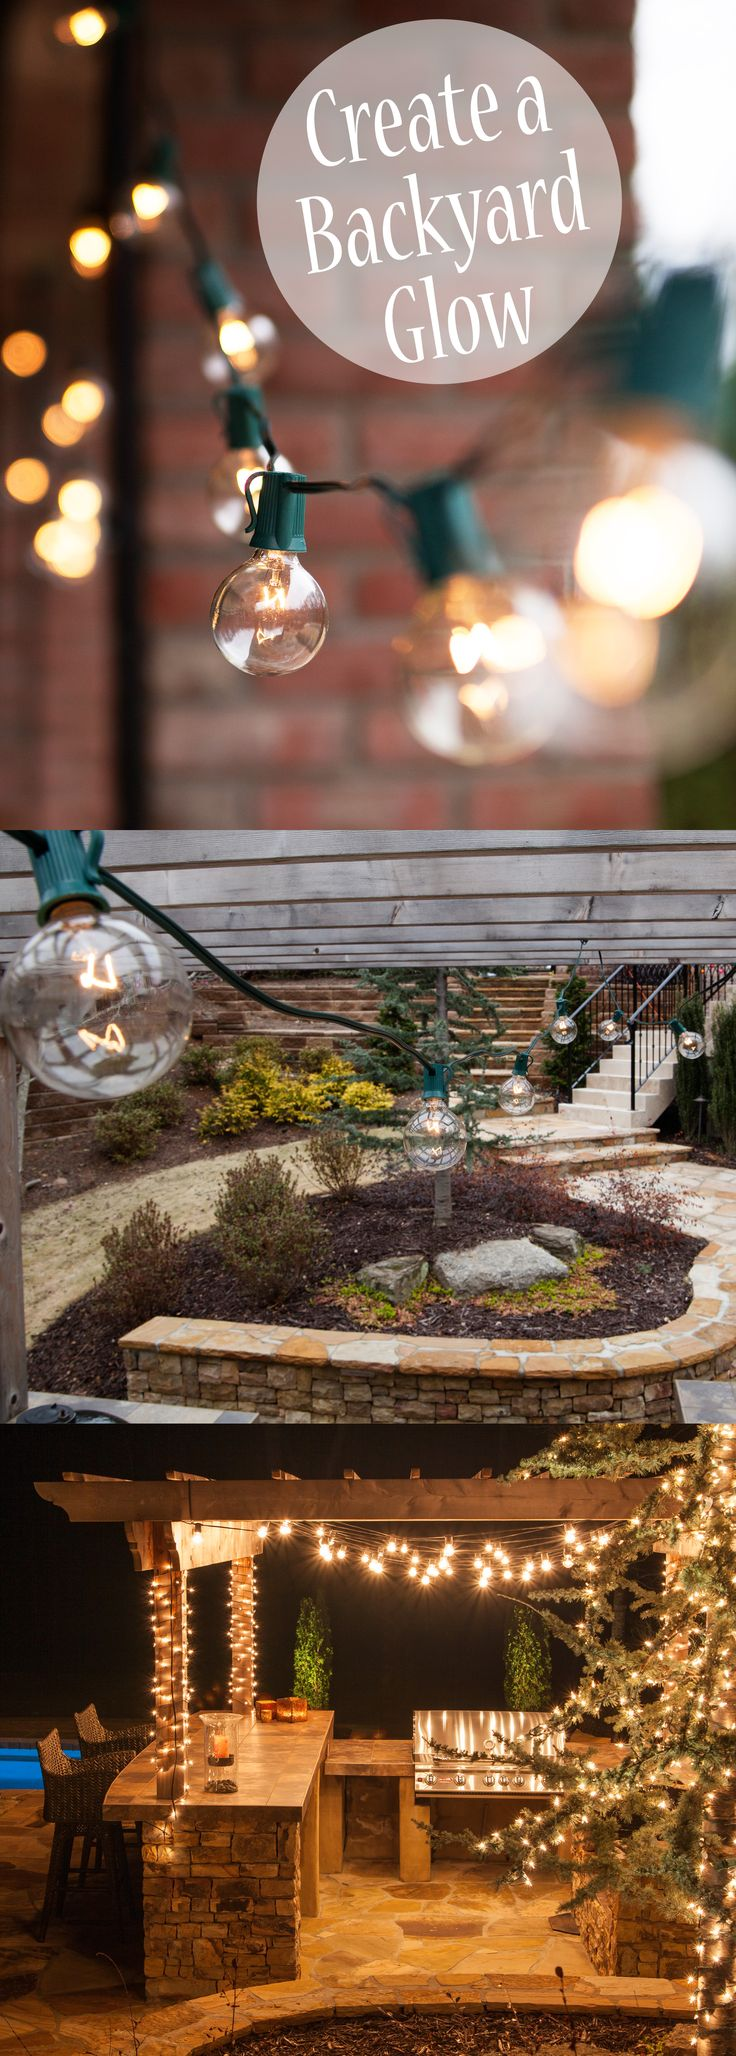 1000+ ideas about Patio String Lights on Pinterest String lights outdoor, String lighting and ...